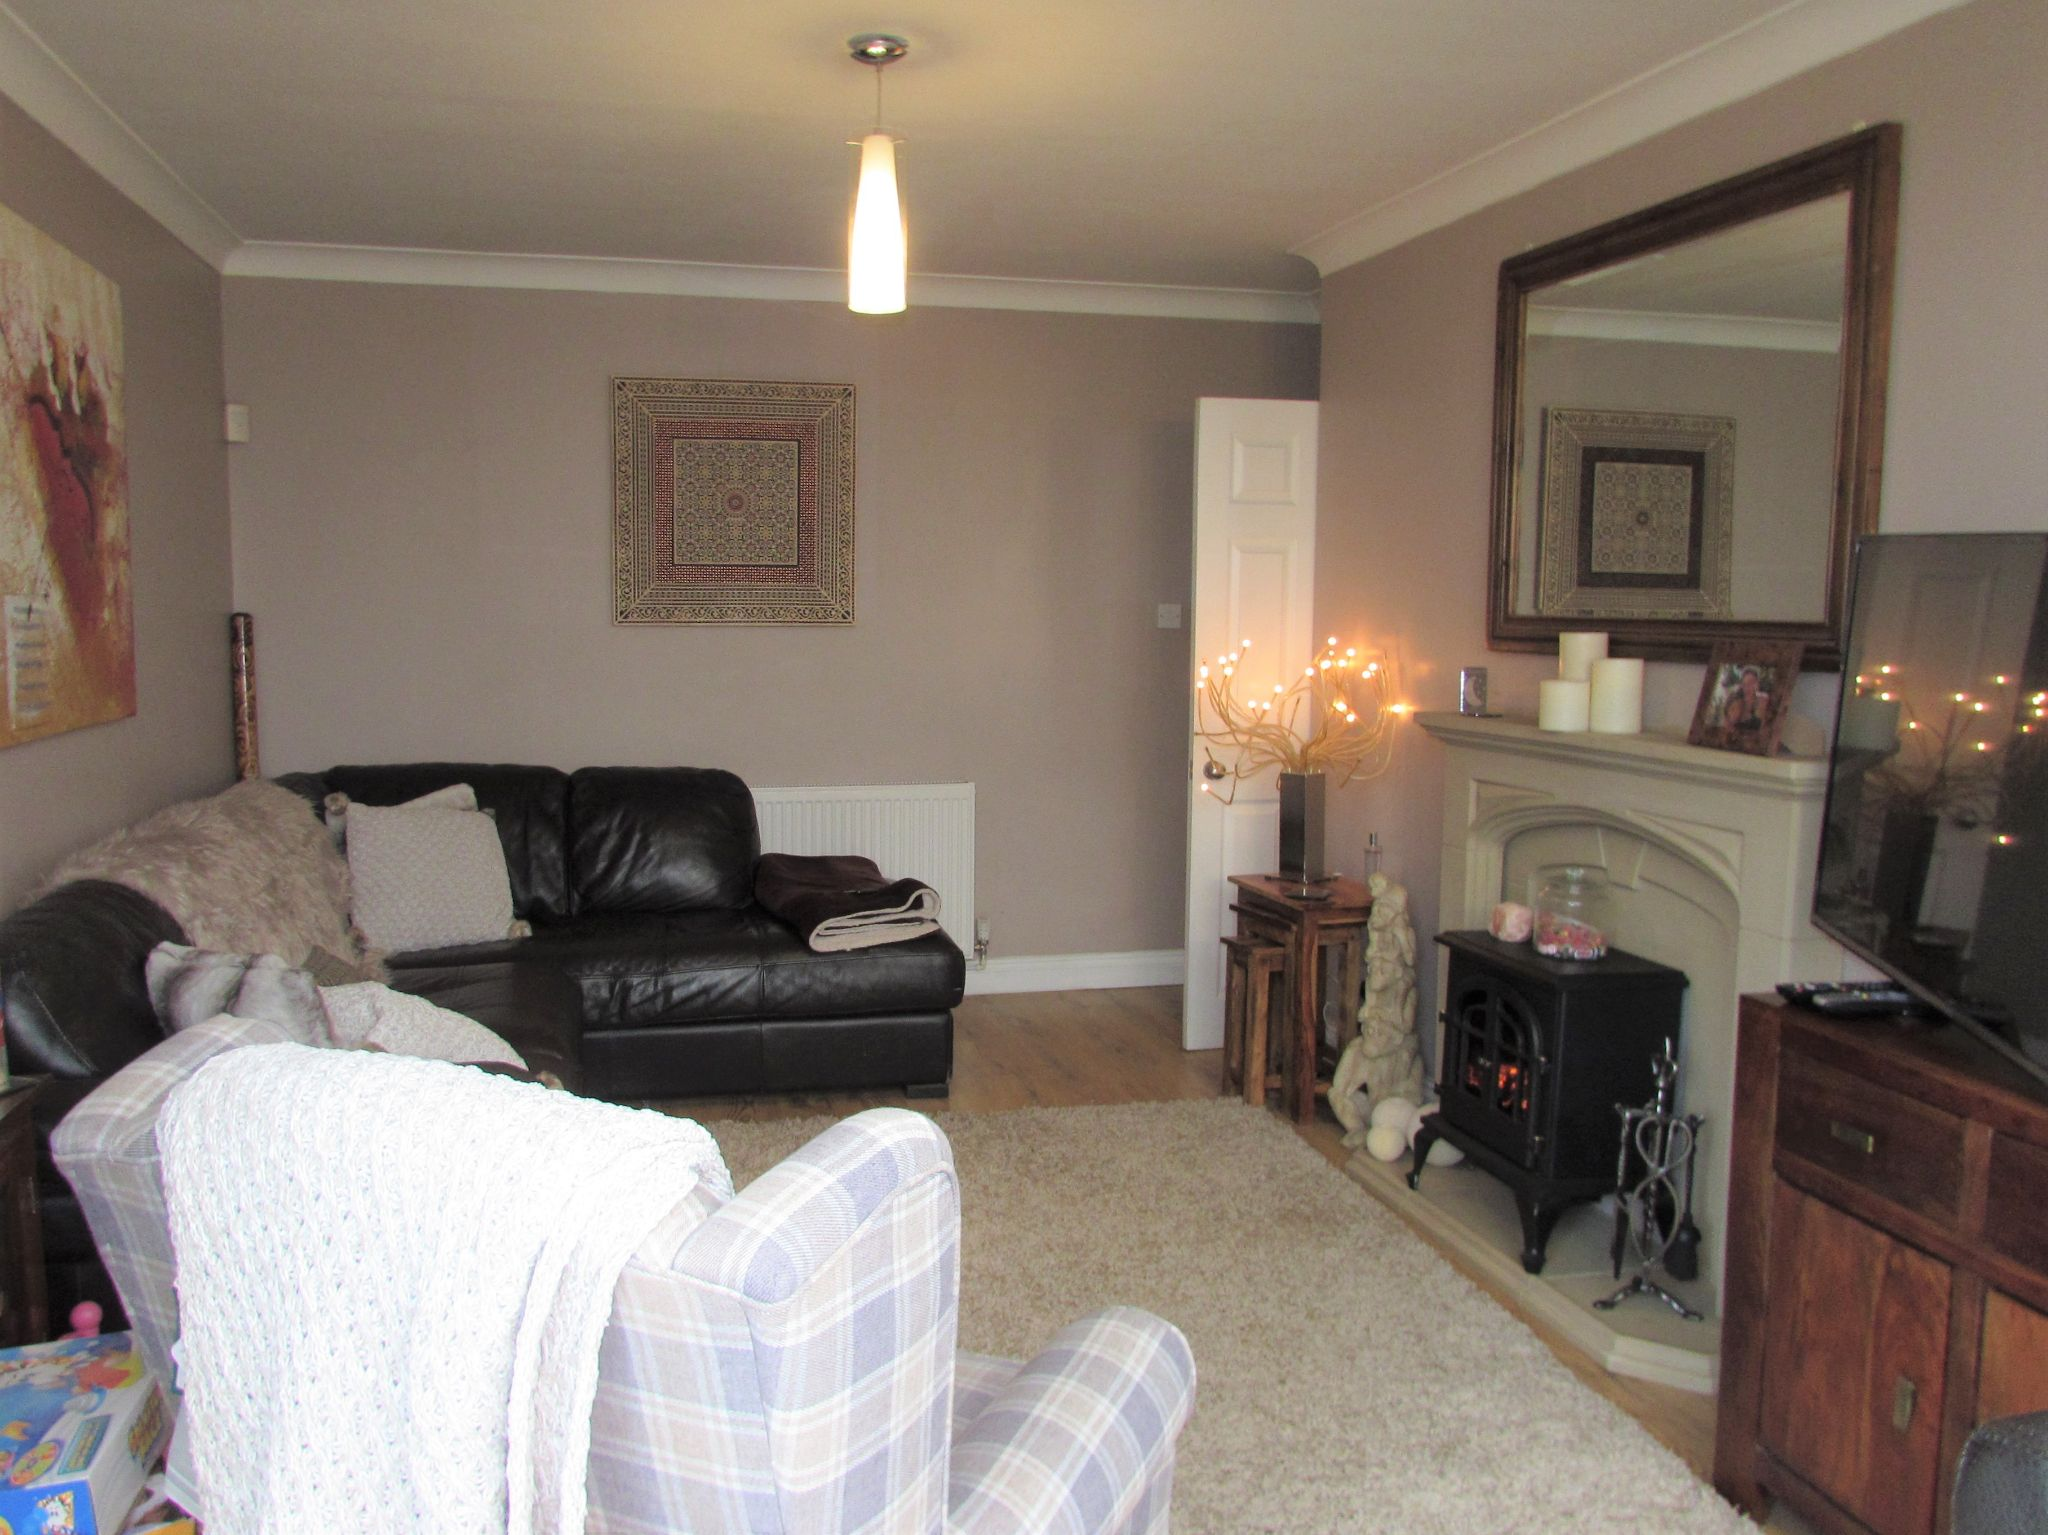 3 Bedroom Semi-detached House For Sale - Rear Lounge